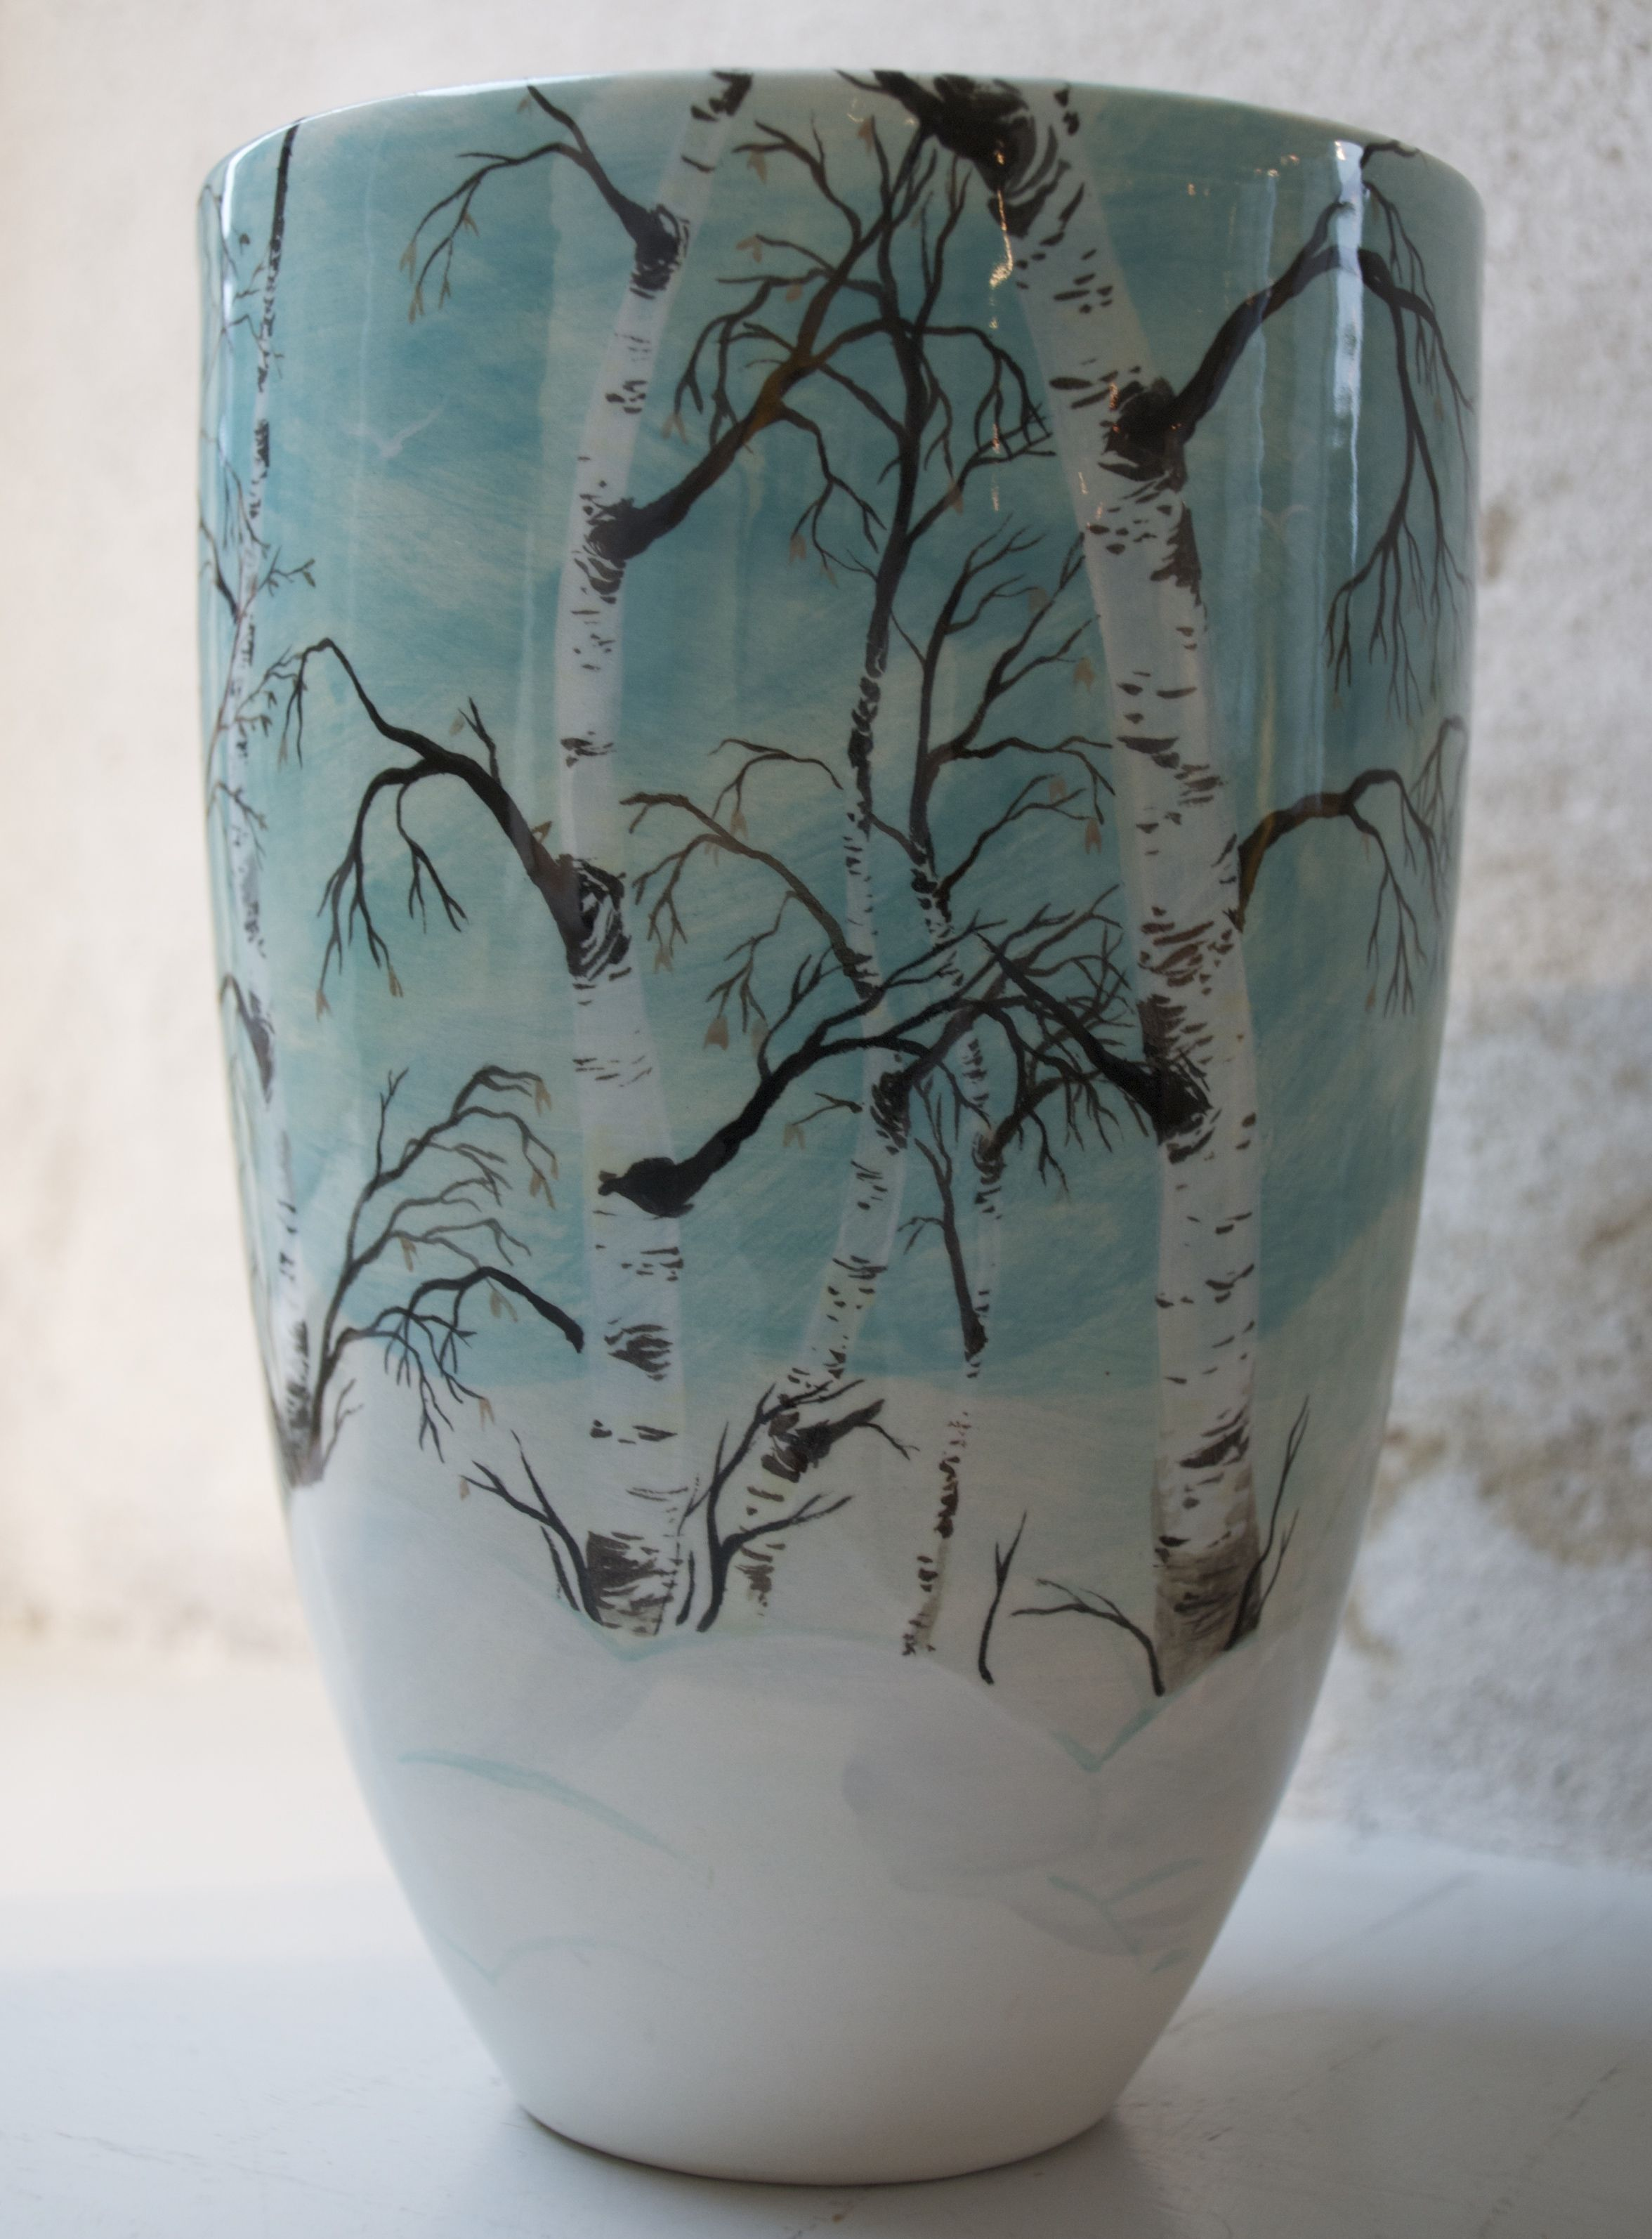 Ceramics vase with birch trees painted by lisbeth thygesen my ceramics vase with birch trees painted by lisbeth thygesen reviewsmspy